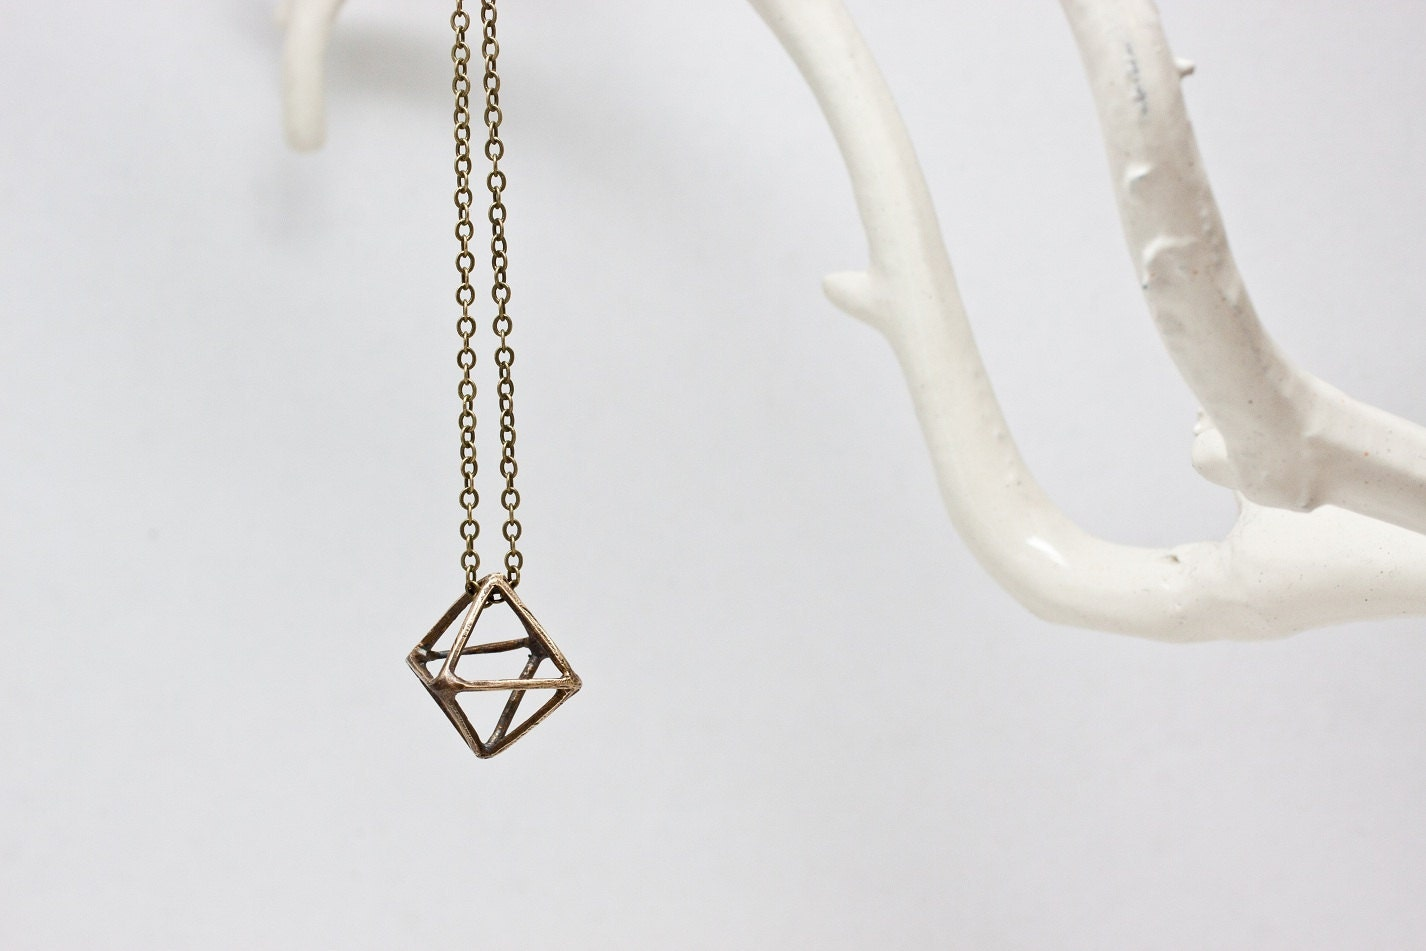 Geometric Brass Diamond Pendant Necklace - CSfootprints